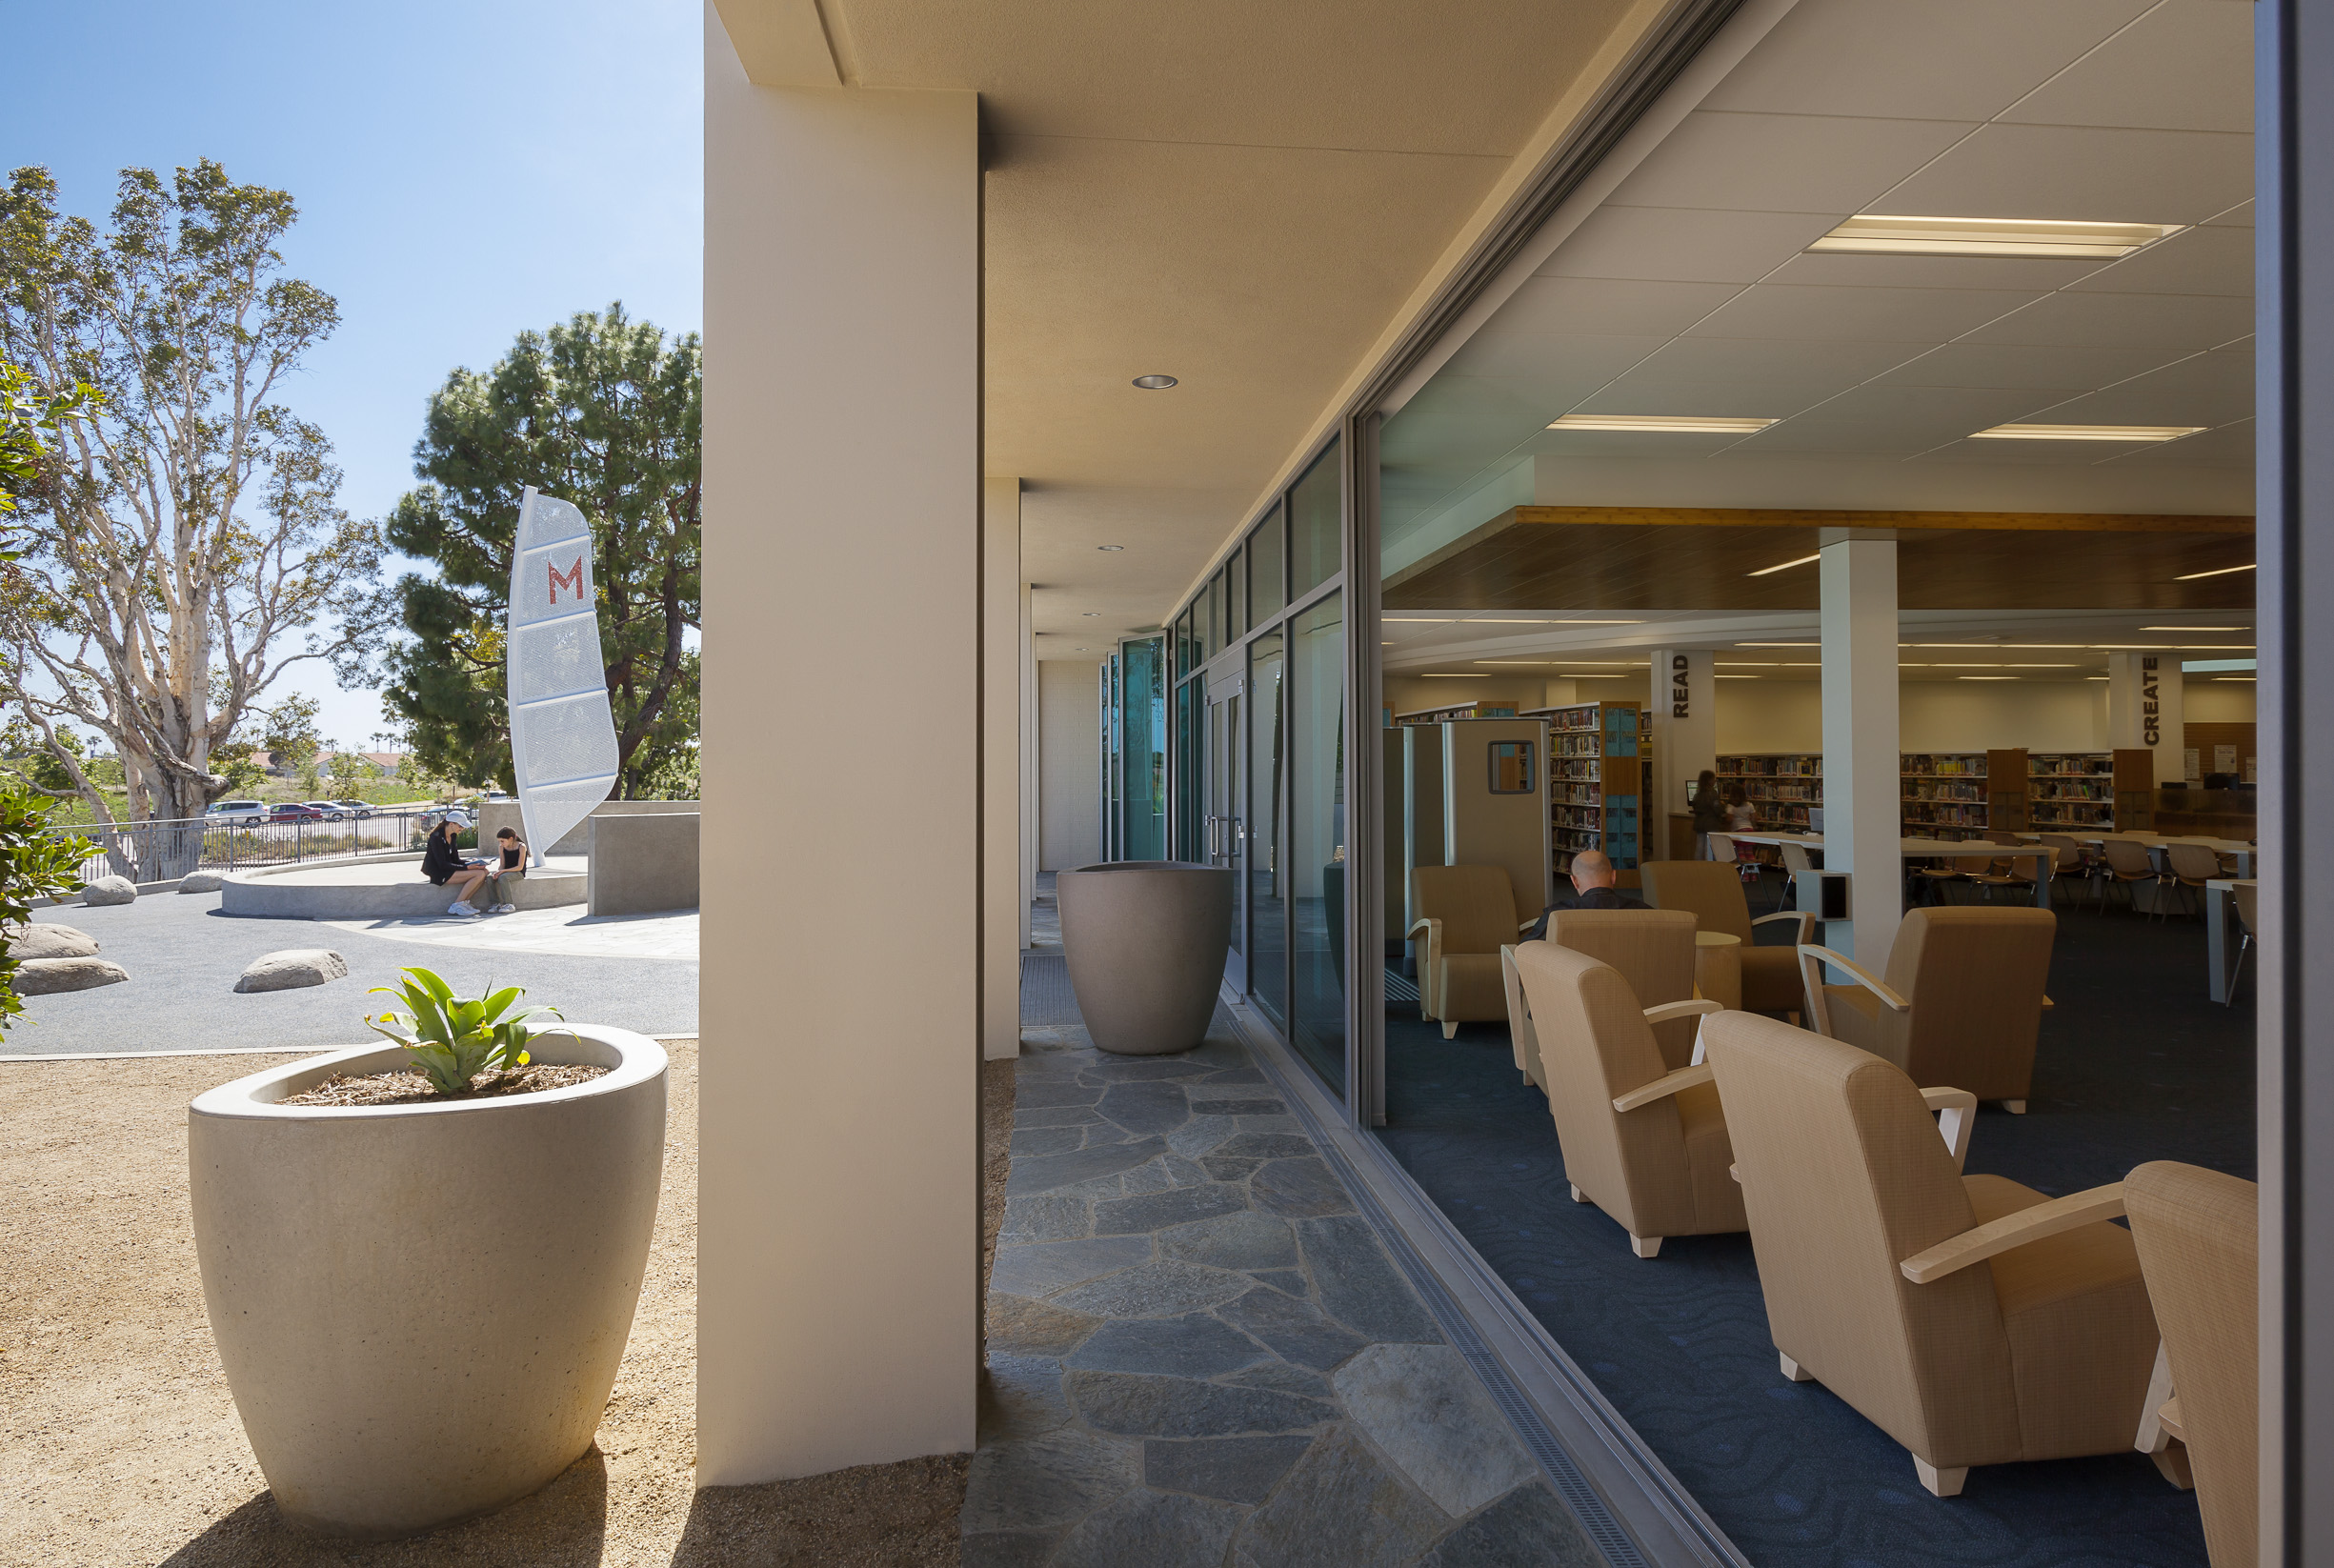 malibu library featured in library journal u2019s top architecture picks of 2012